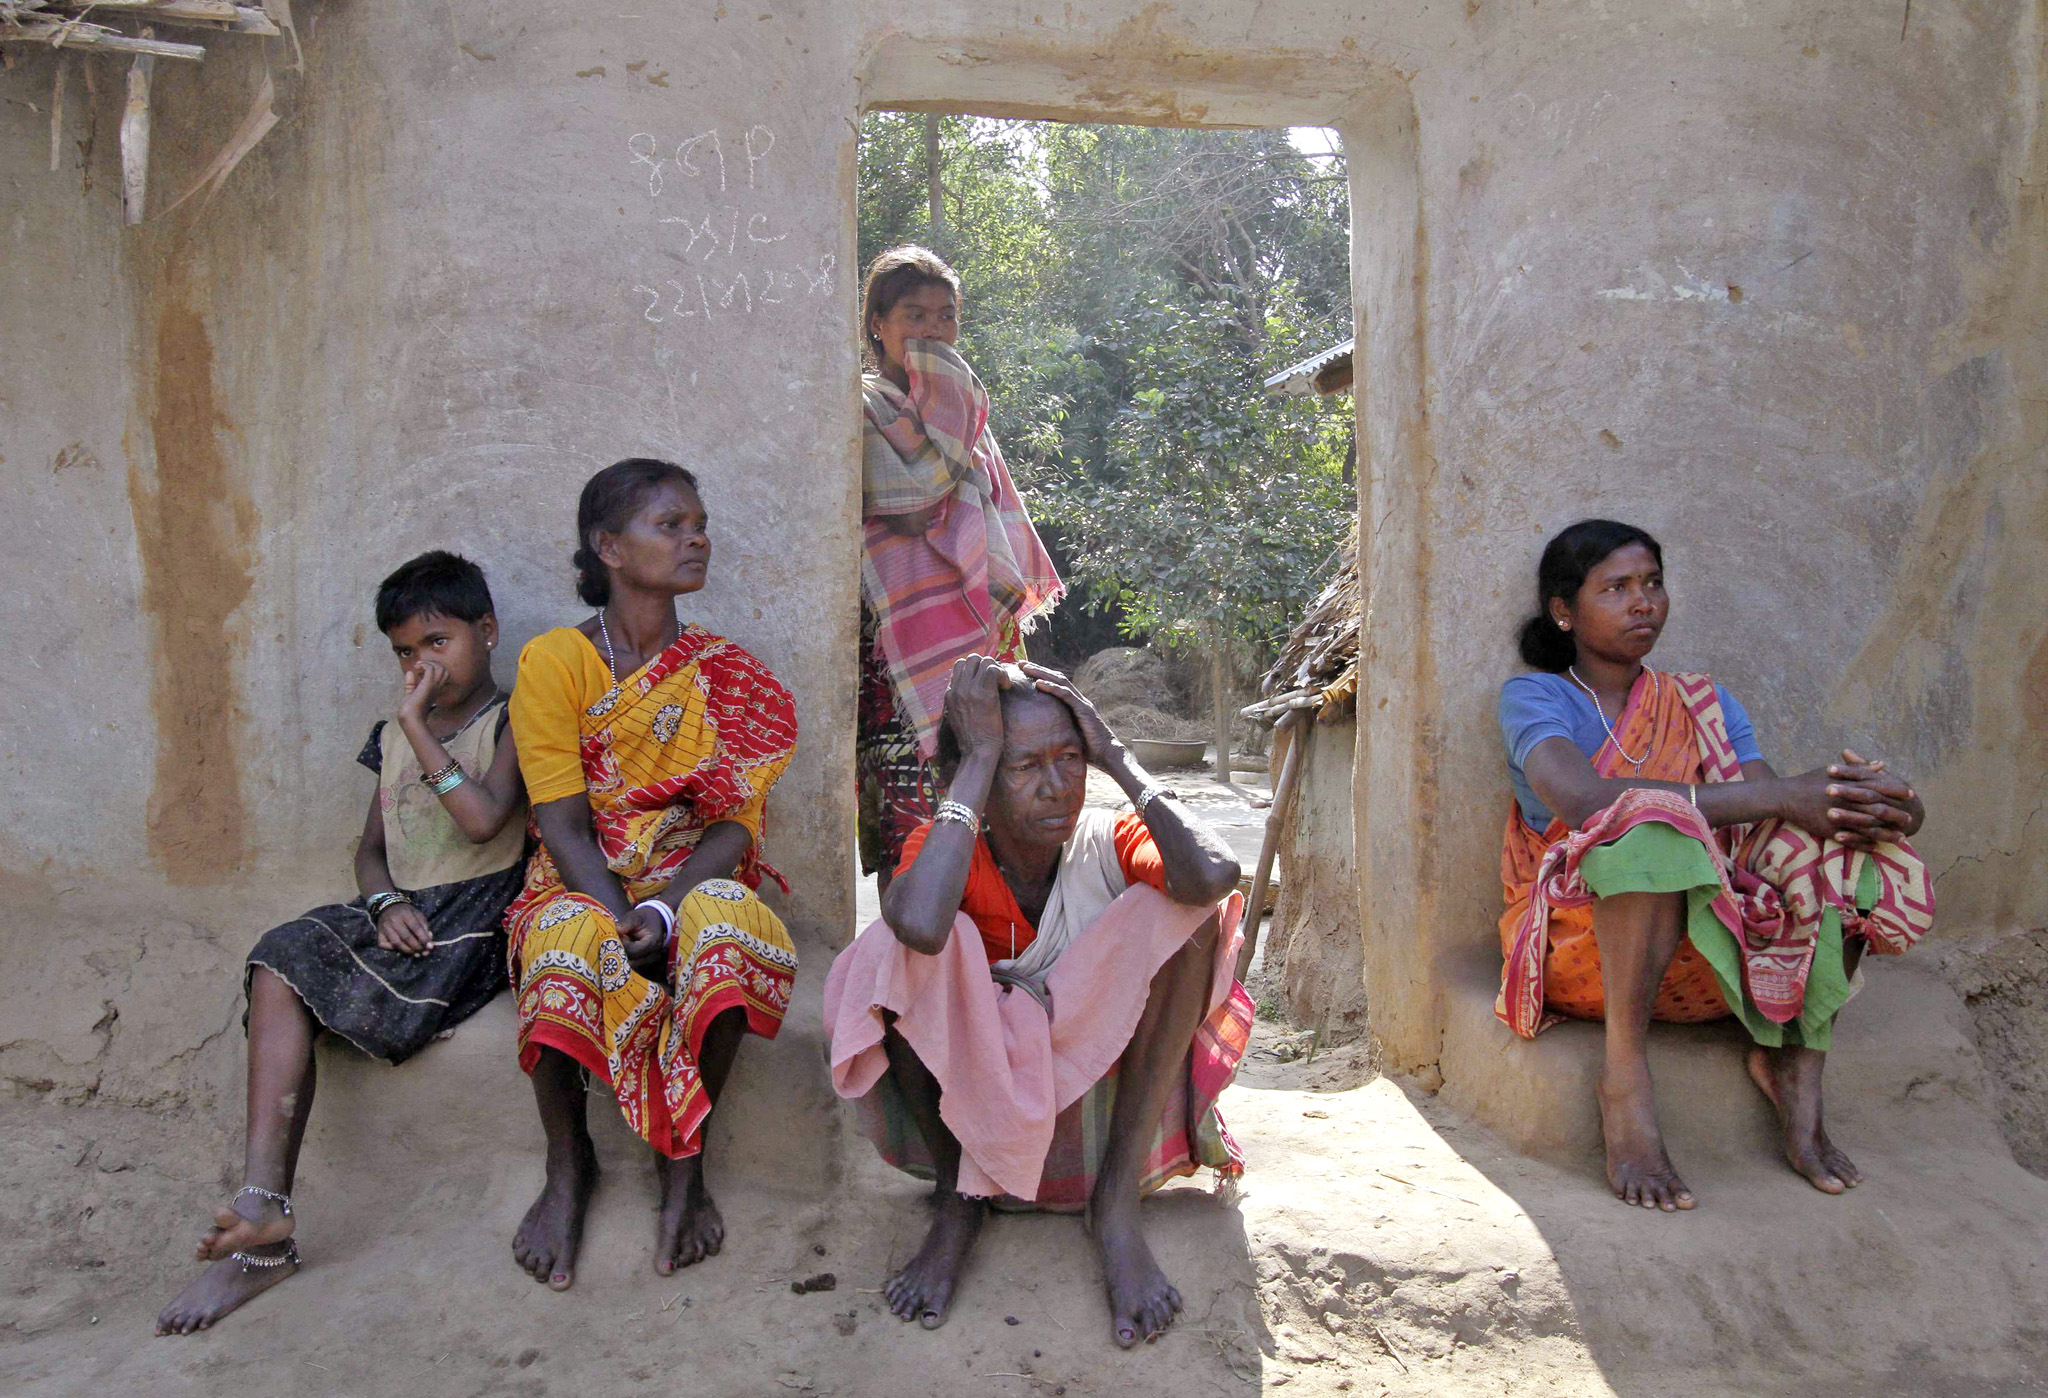 Villagers sit near the area where a woman was gang-raped at Birbhum district...Villagers sit near the area where a woman was gang-raped at Birbhum district in the eastern Indian state of West Bengal January 24, 2014. India's Supreme Court on Friday ordered an investigation into the gang rape of a 20-year-old woman from an eastern tribal region by 13 men on the orders of a village court, a case that has sparked protests demanding swift justice.